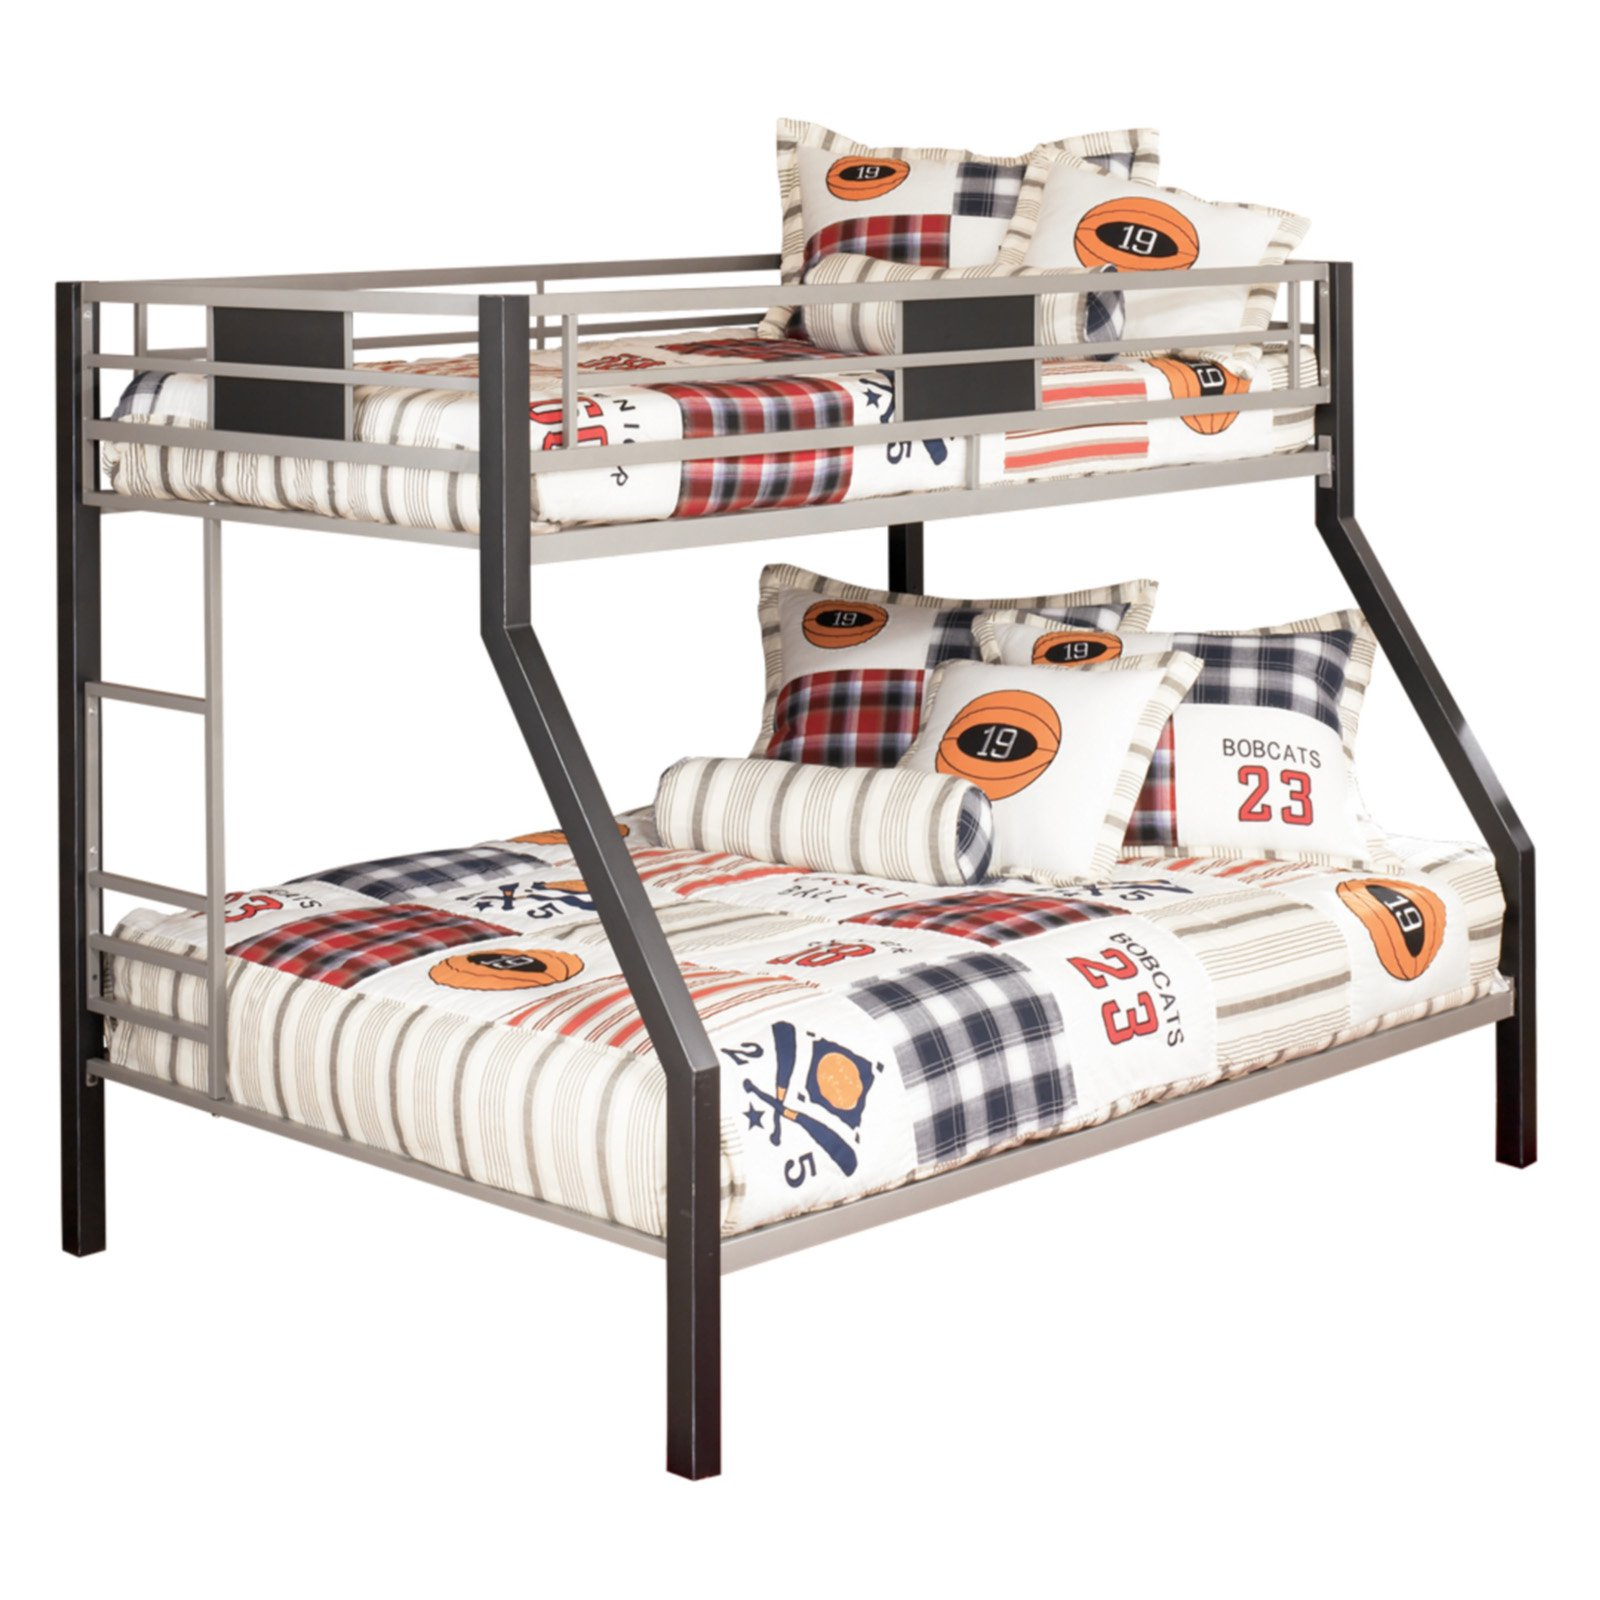 Signature Design by Ashley Dinsmore Twin Over Full Bunk Bed with Ladder